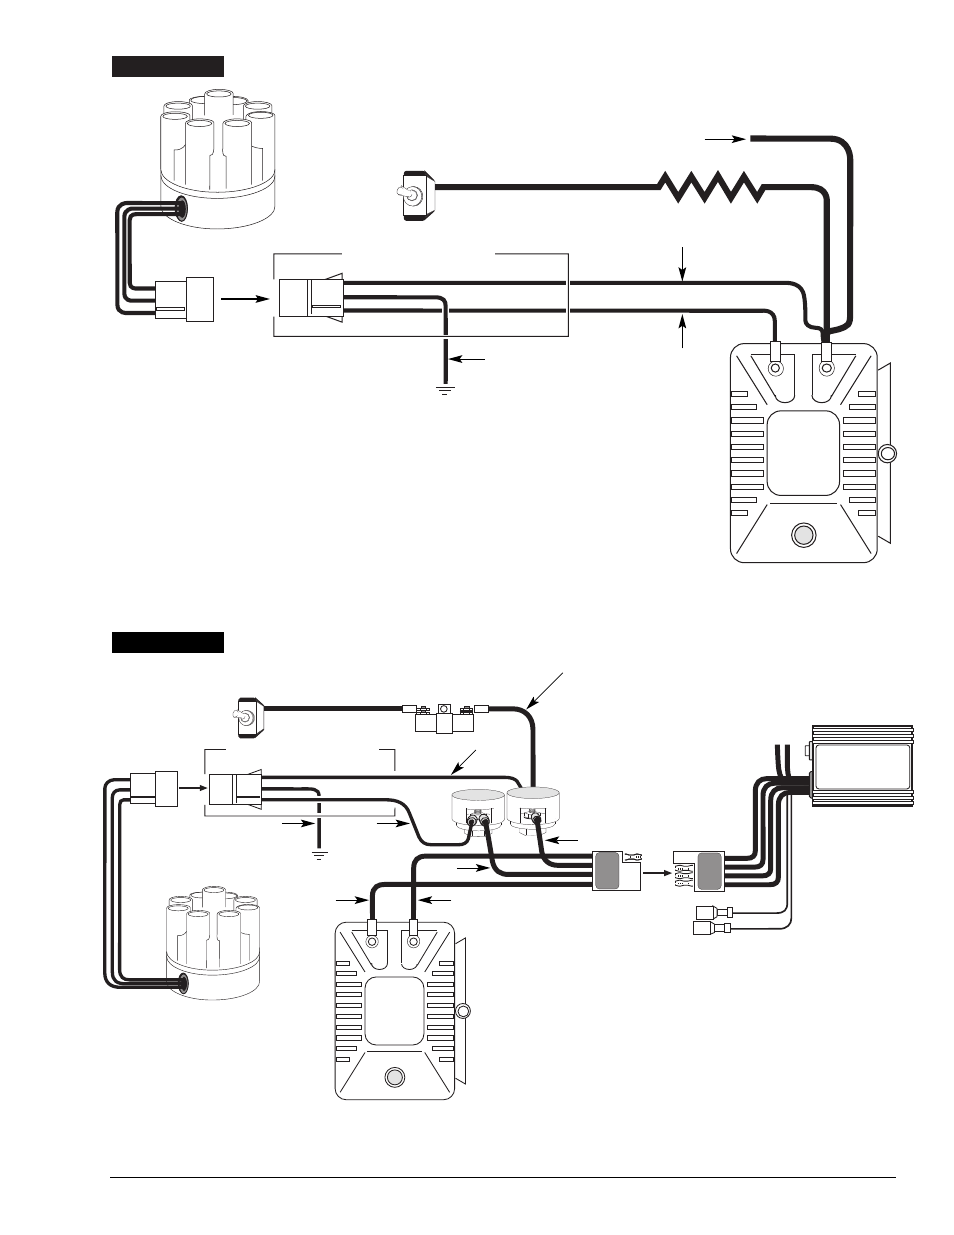 Mallory Ignition Wiring Diagram Ford on mallory promaster coil wiring diagram, mallory 6100m ignition, mallory msd 6al wiring-diagram, mallory electronic ignition coil wire diagram, mallory motor timing diagram, mallory dist wiring-diagram, mallory electronic ignition triggering devices, mallory mag wiring-diagram,